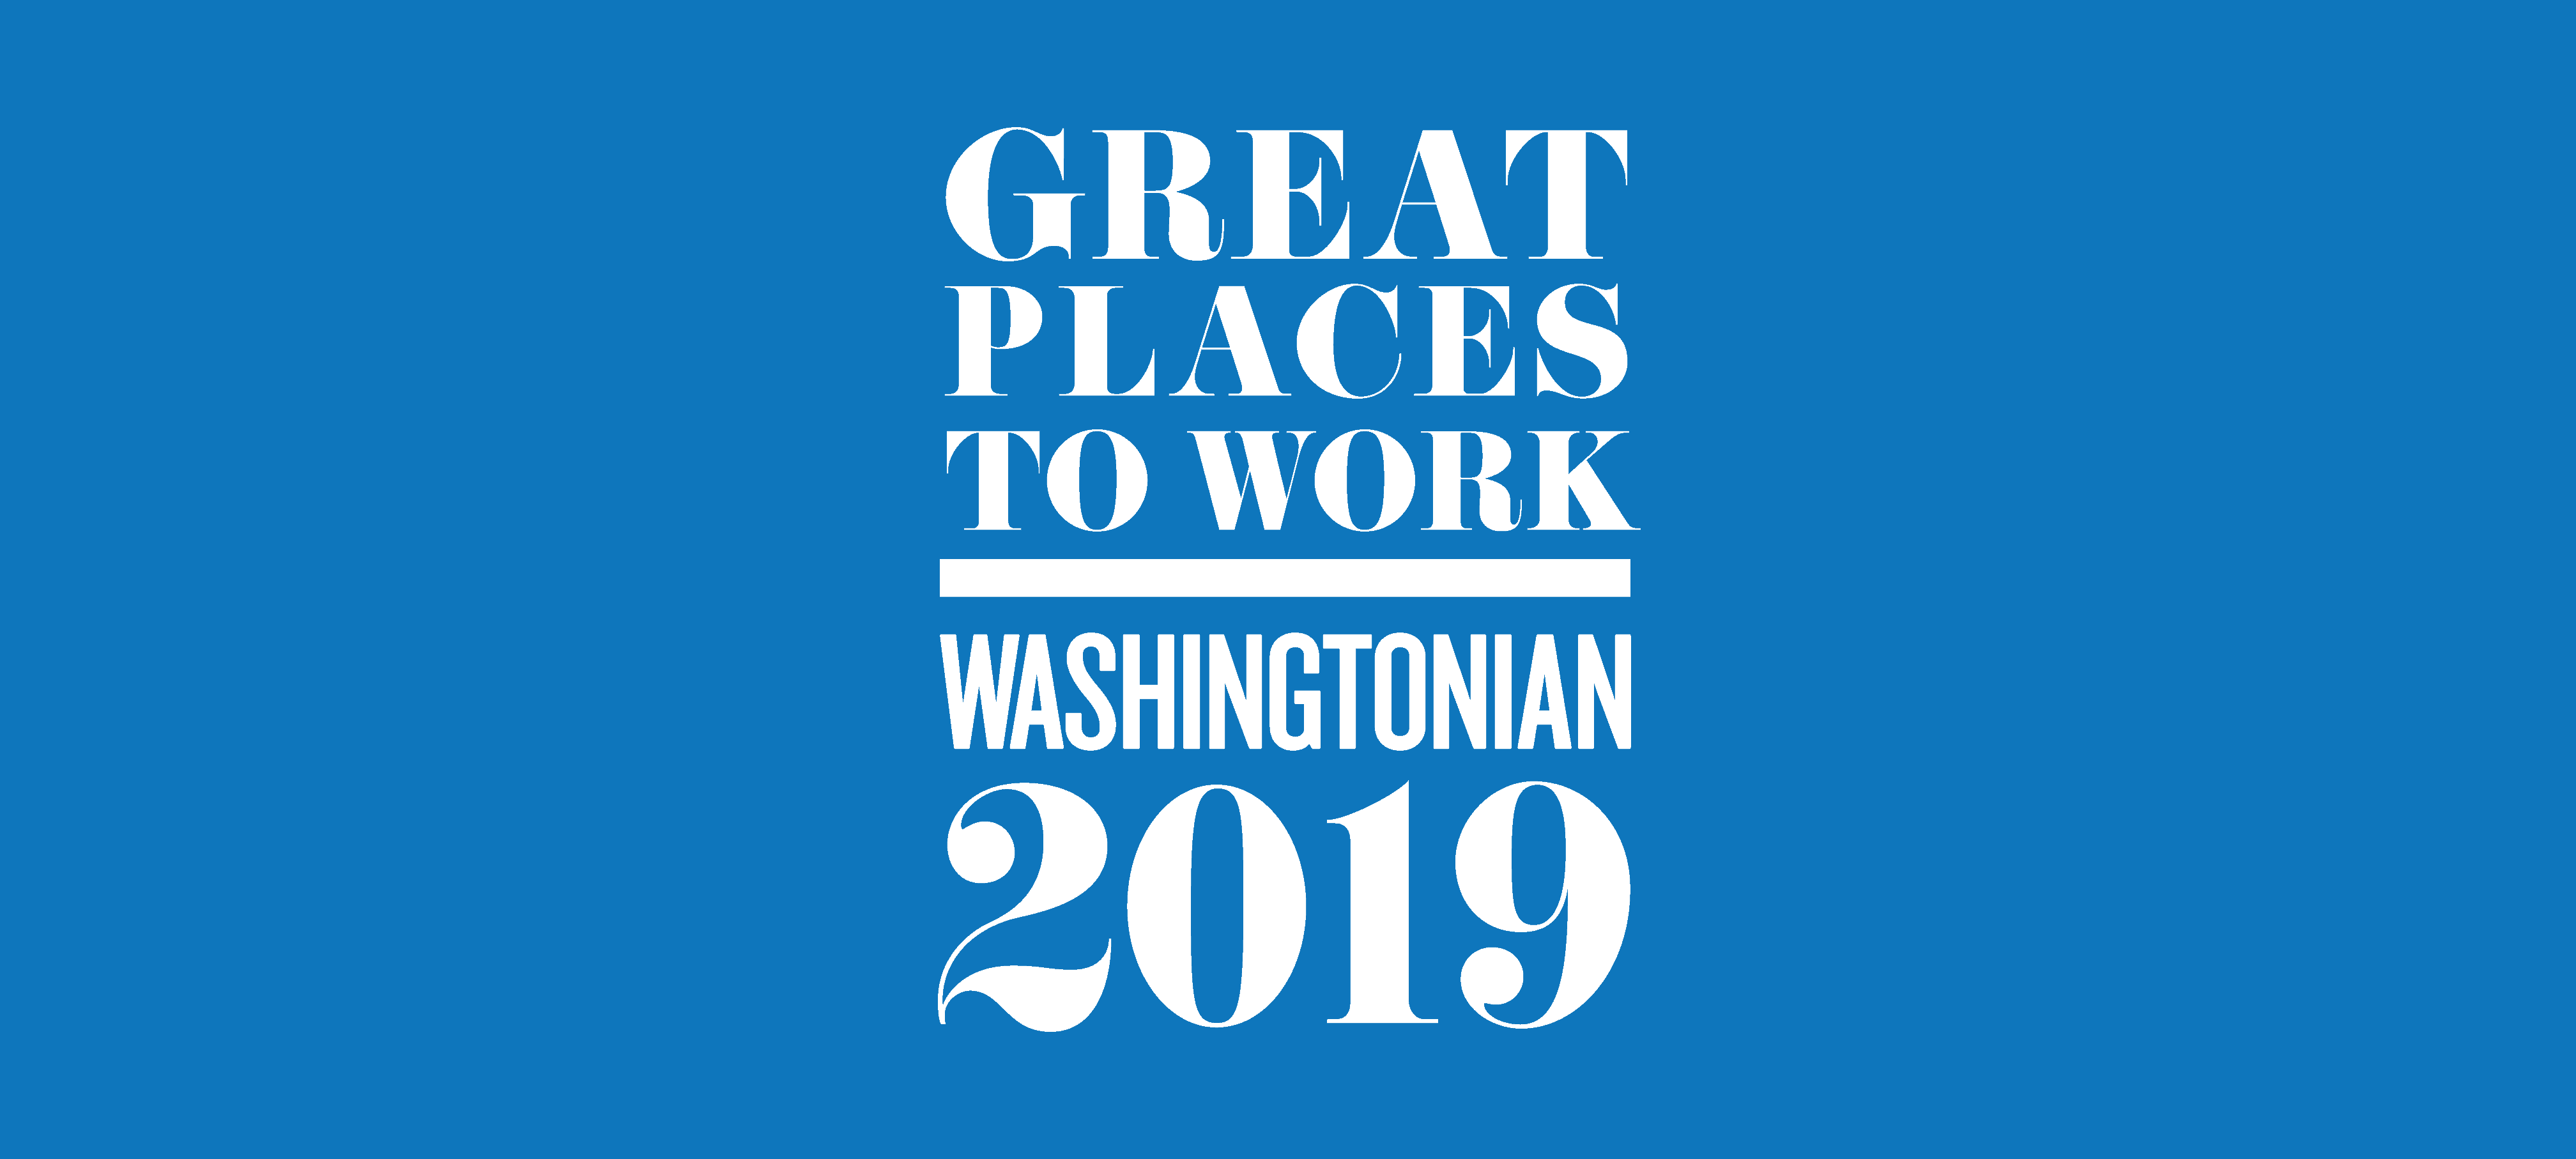 NVO Named One of Washingtonian's 50 Great Places to Work